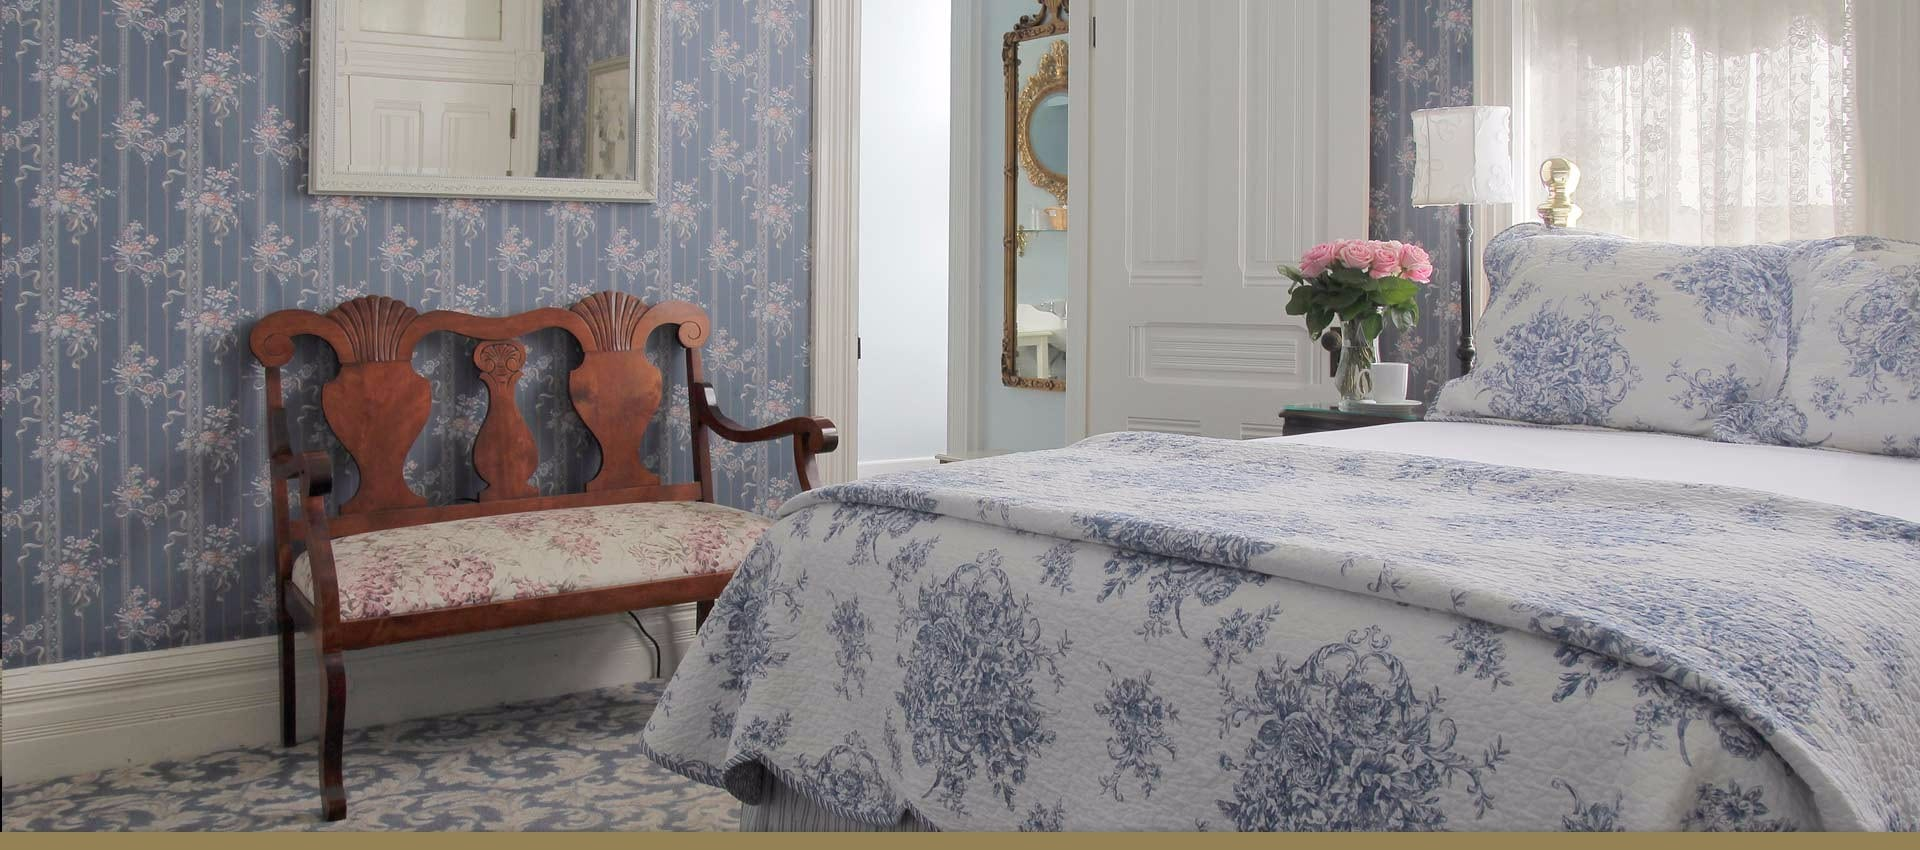 Victorian Inn Boutique Hote bed and sitting chair